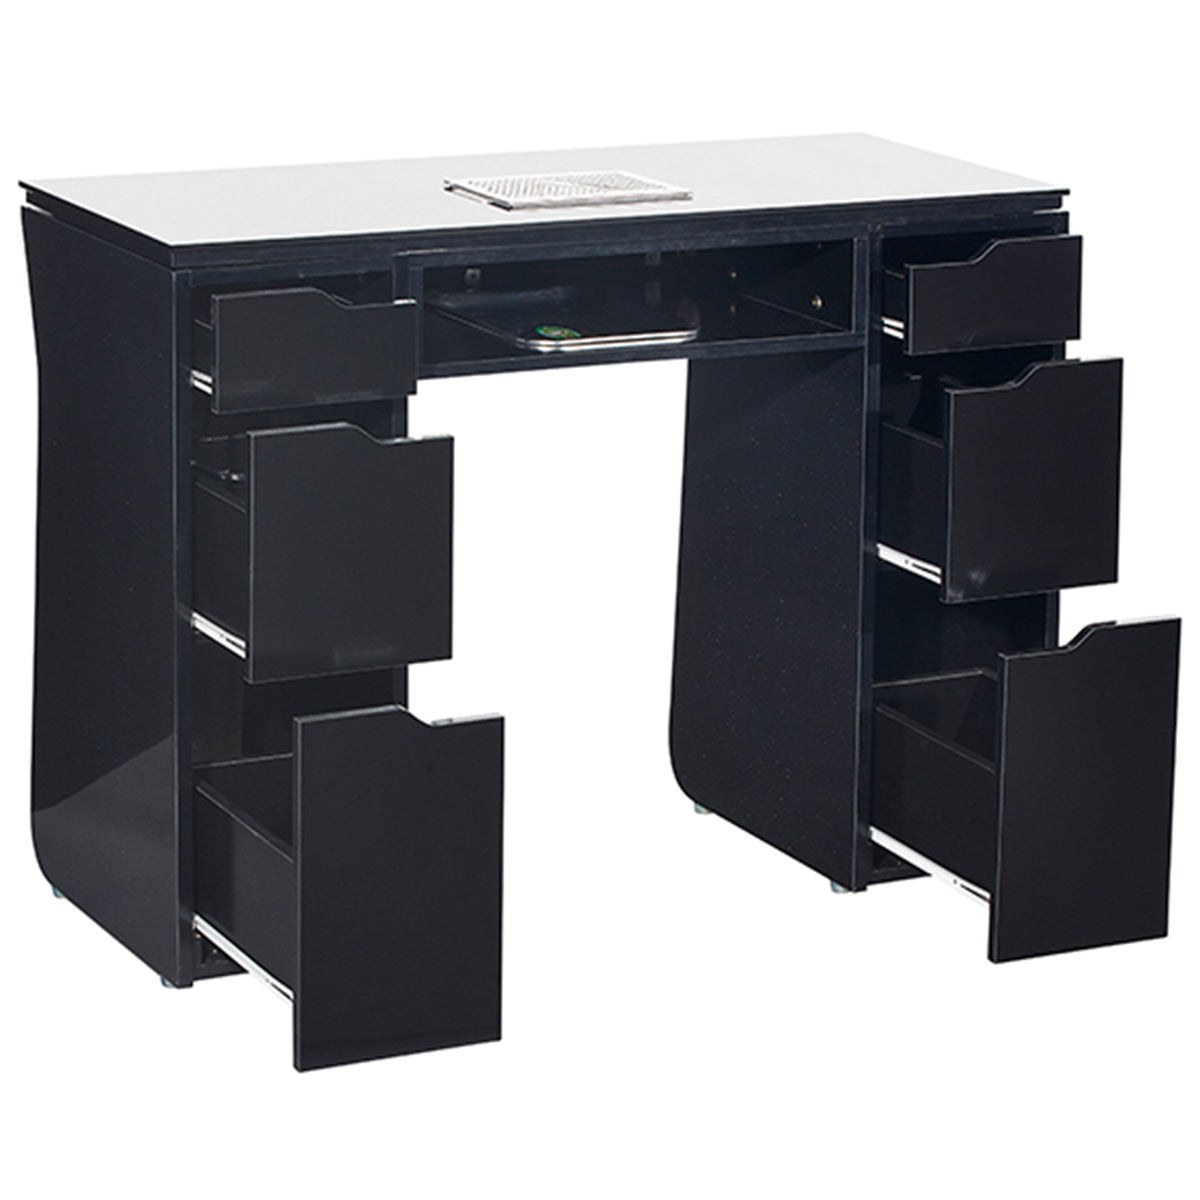 VICKI Manicure Nail Table - Black - Drawers Open